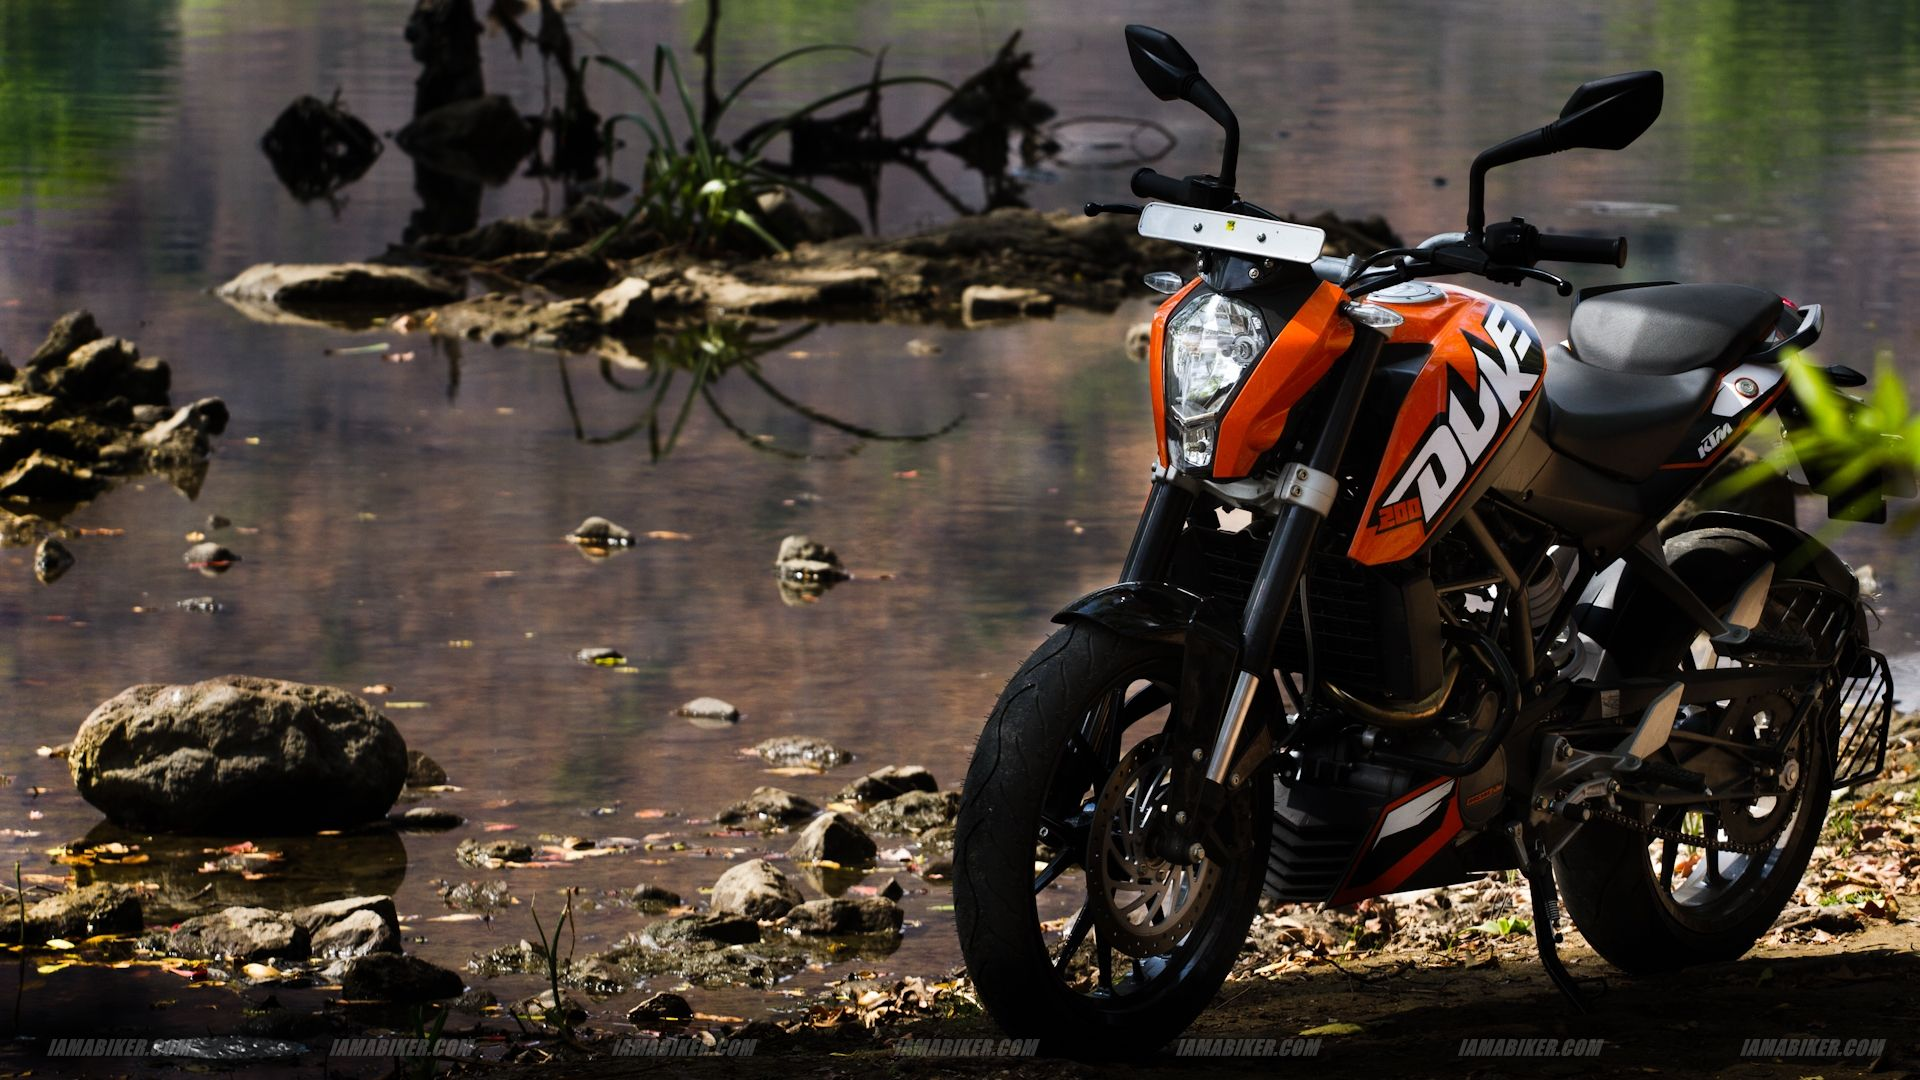 Ktm motorcycles hd wallpapers free wallaper downloads ktm sport - Ktm Motorcycles Hd Wallpapers Free Wallaper Downloads Ktm Sport 35